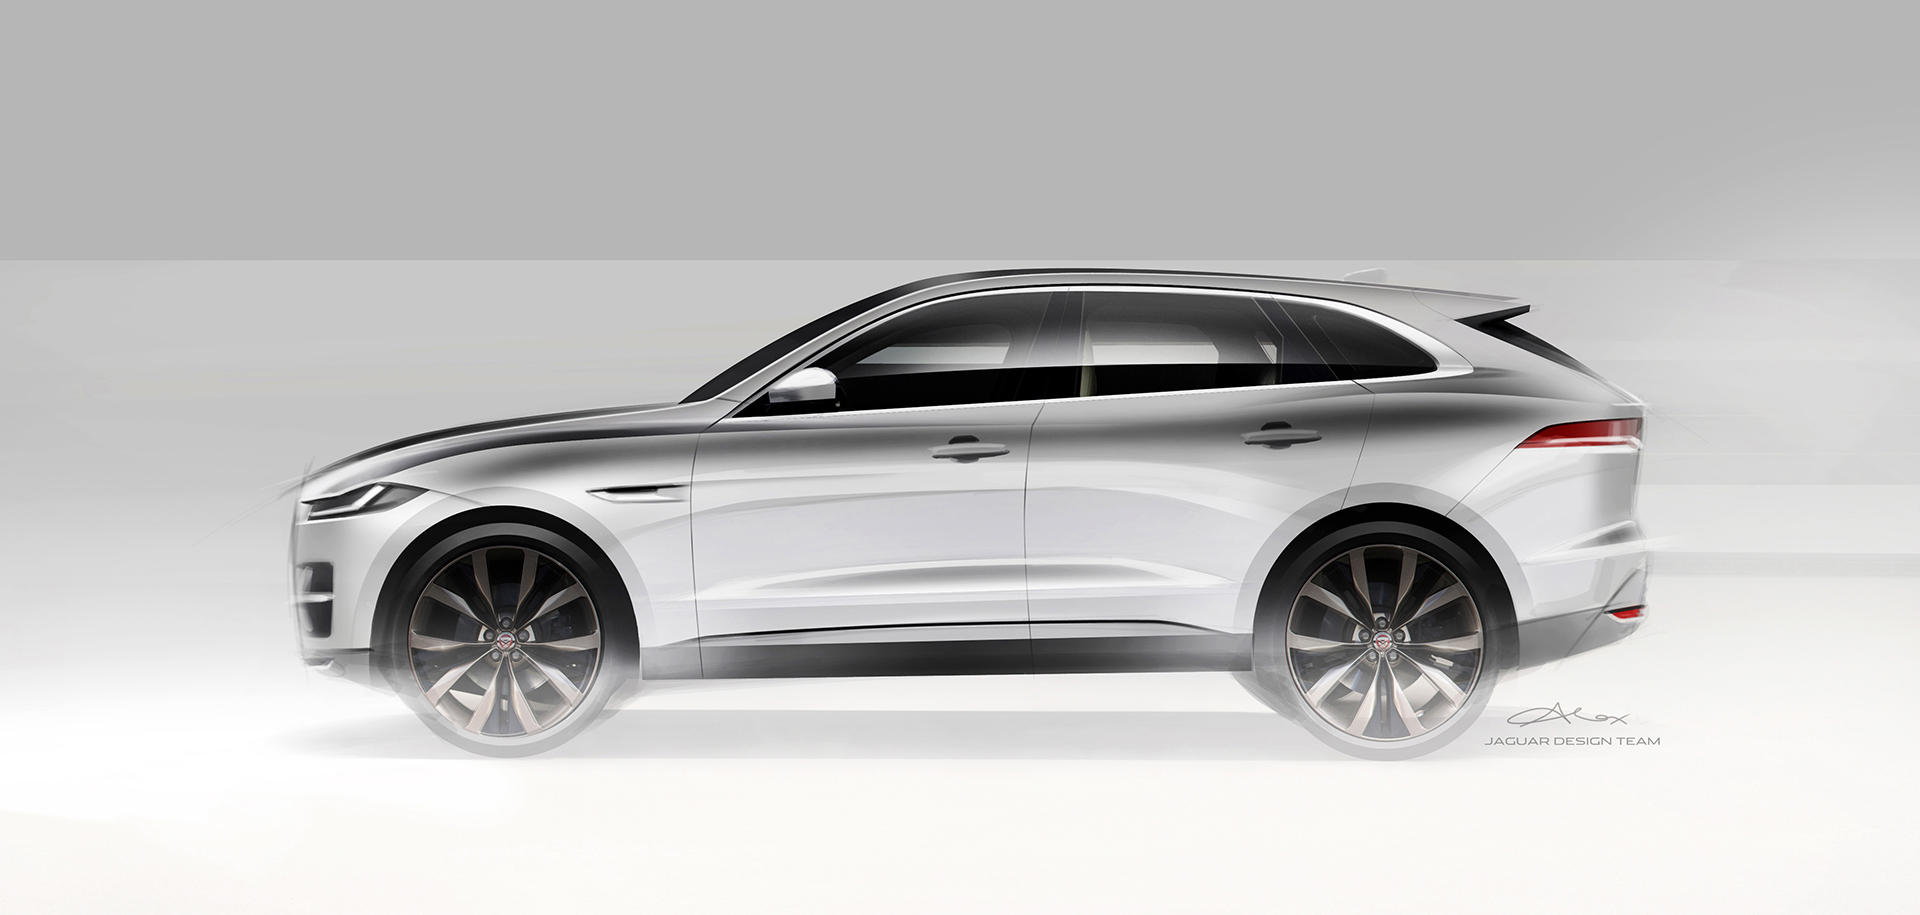 Jaguar F-PACE - design sketch